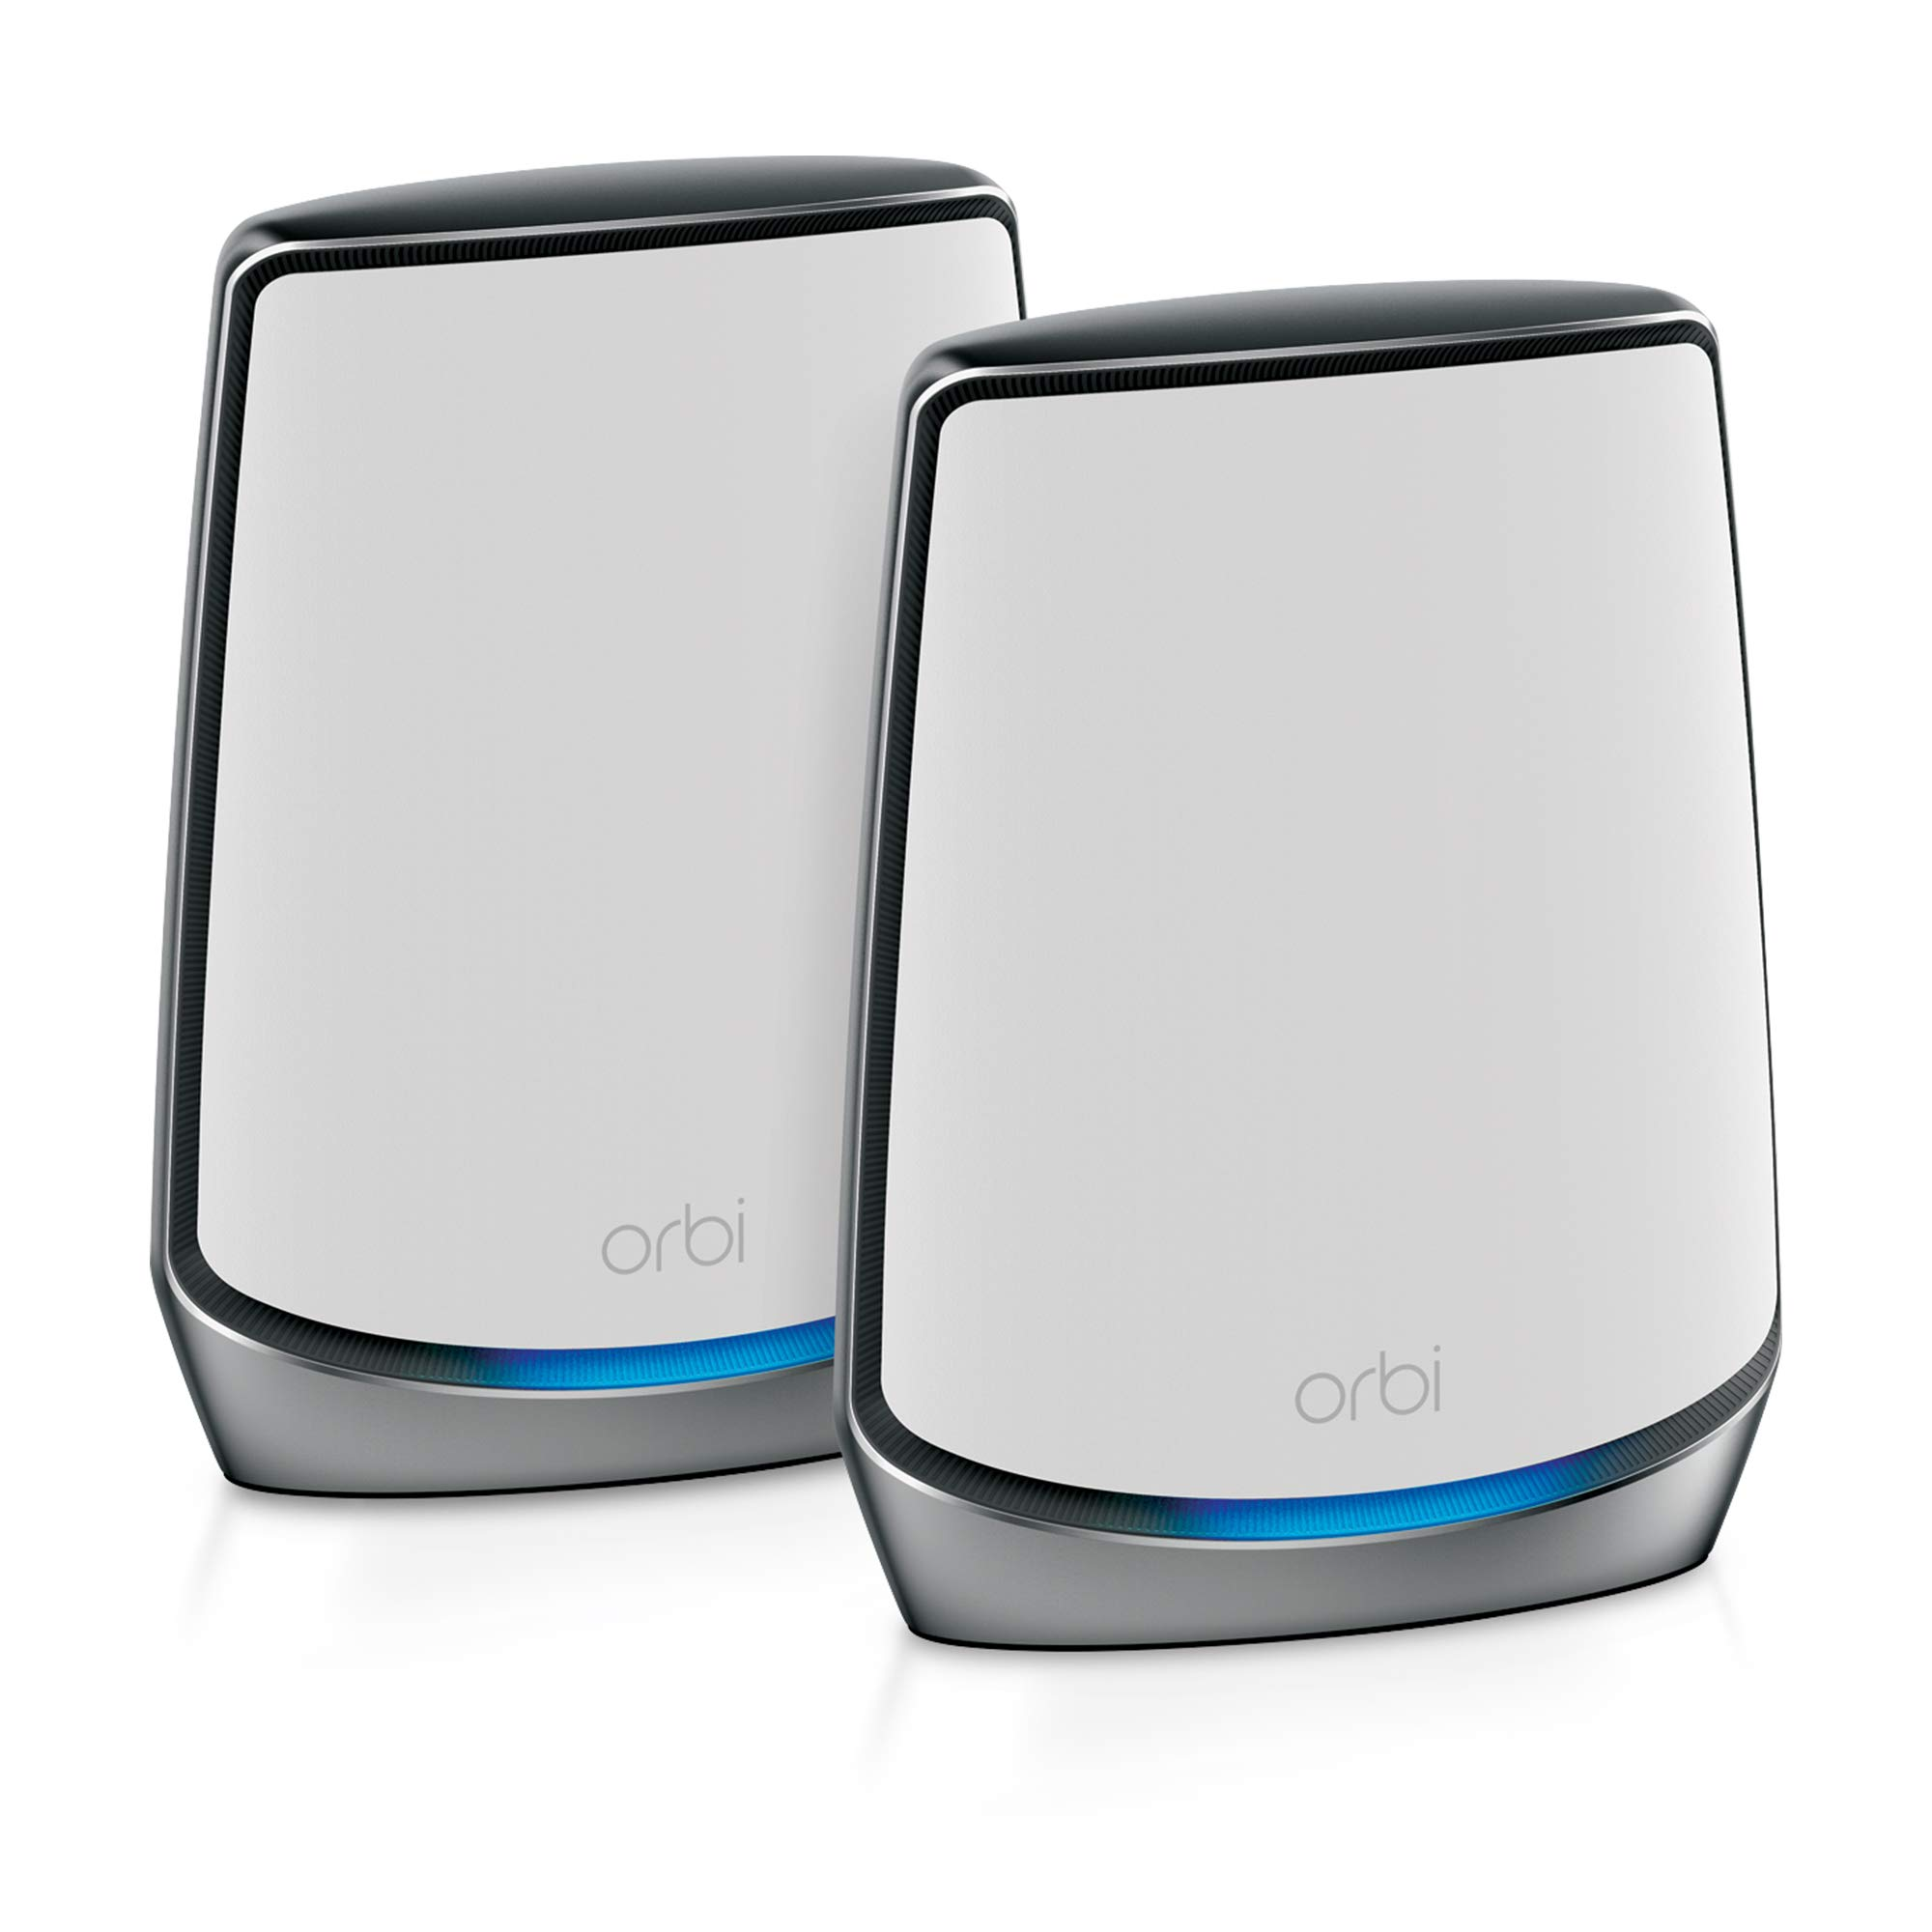 NETGEAR Orbi Whole Home Tri-Band Mesh WiFi 6 System (RBK852) - Router with 1 Satellite Extender | Coverage Up to 5, 000 Sq. ft. and 60+ Devices | Tri-Band AX6000 WiFi (Up to 6Gbps) by NETGEAR